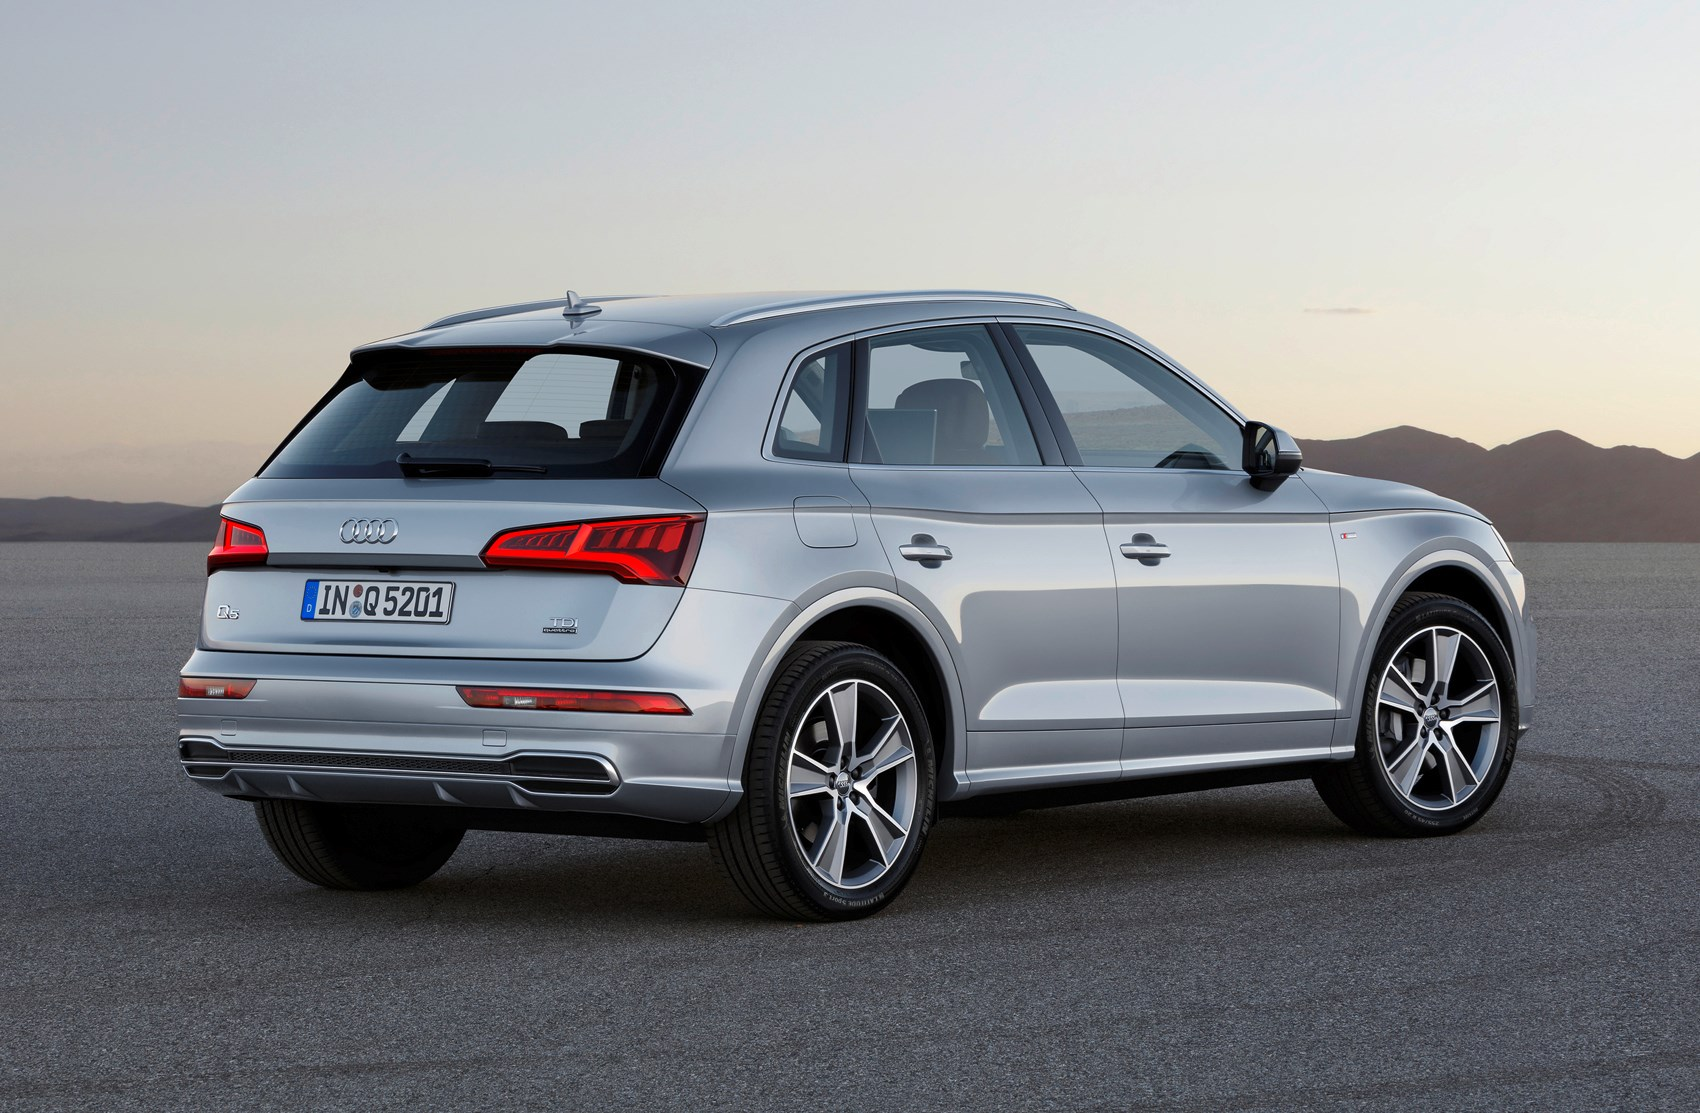 Audi Q5 SUV (2016 - ) Photos | Parkers